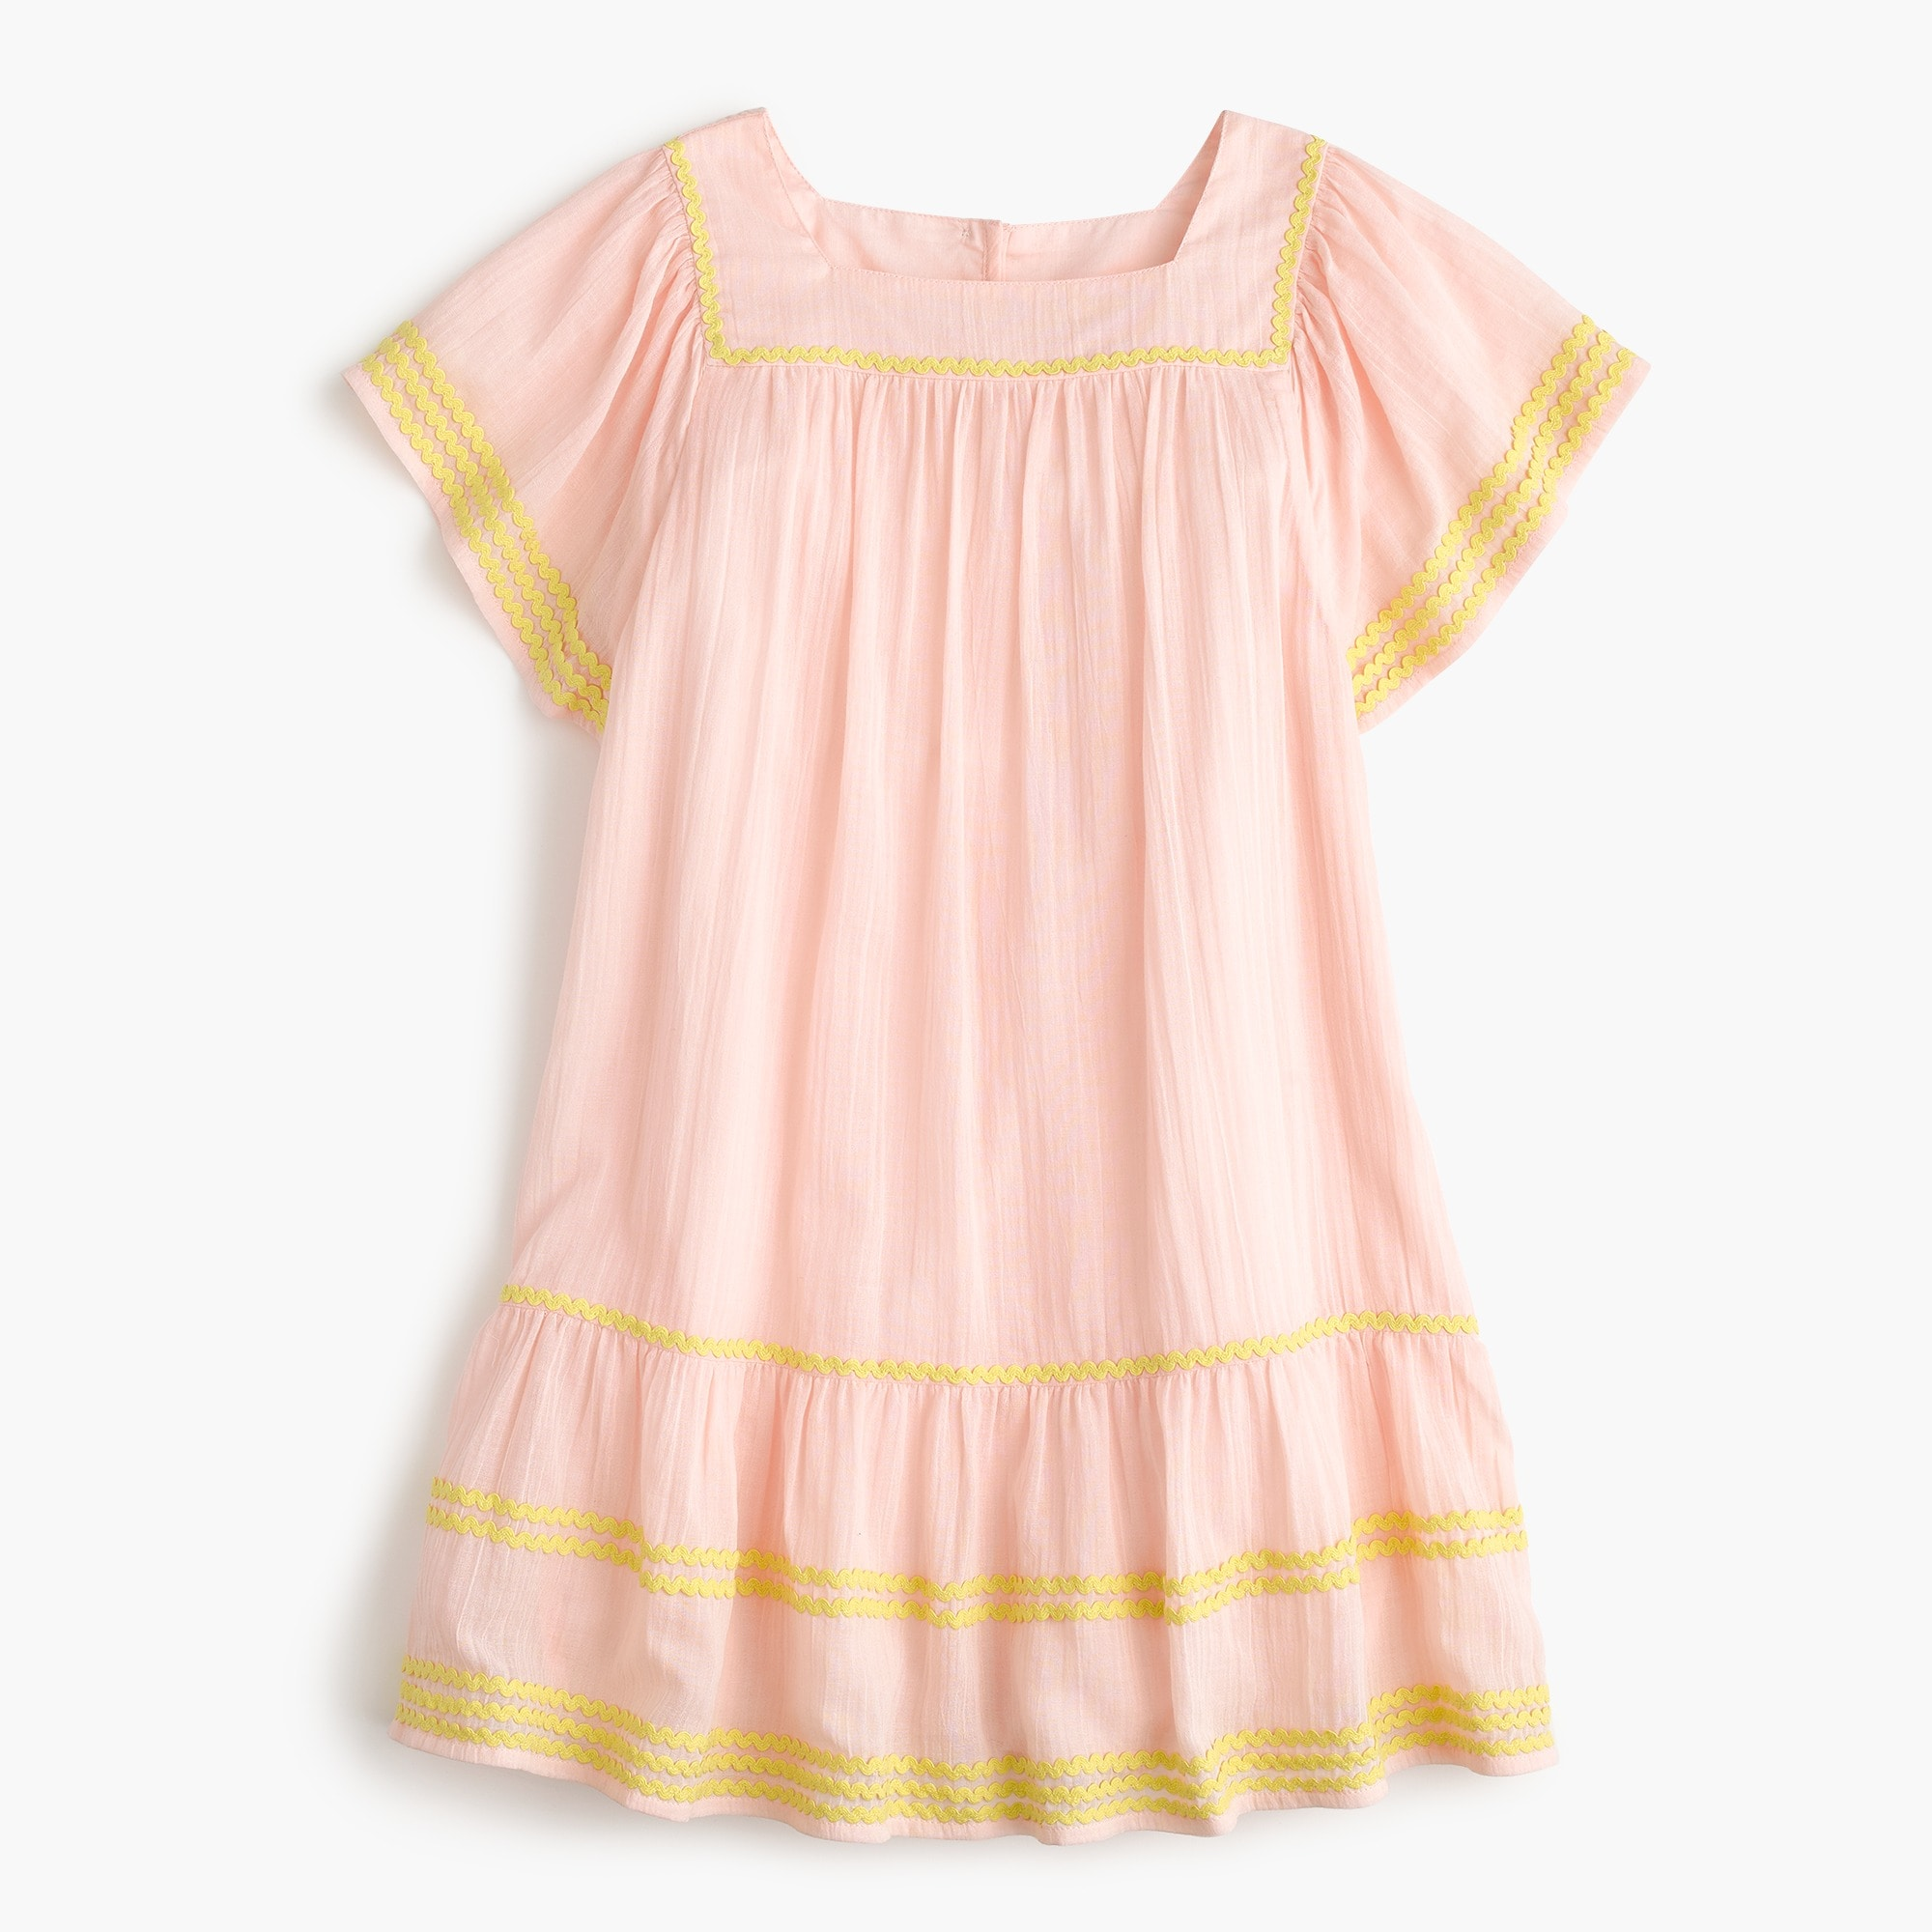 Girls' rickrack-trimmed dress